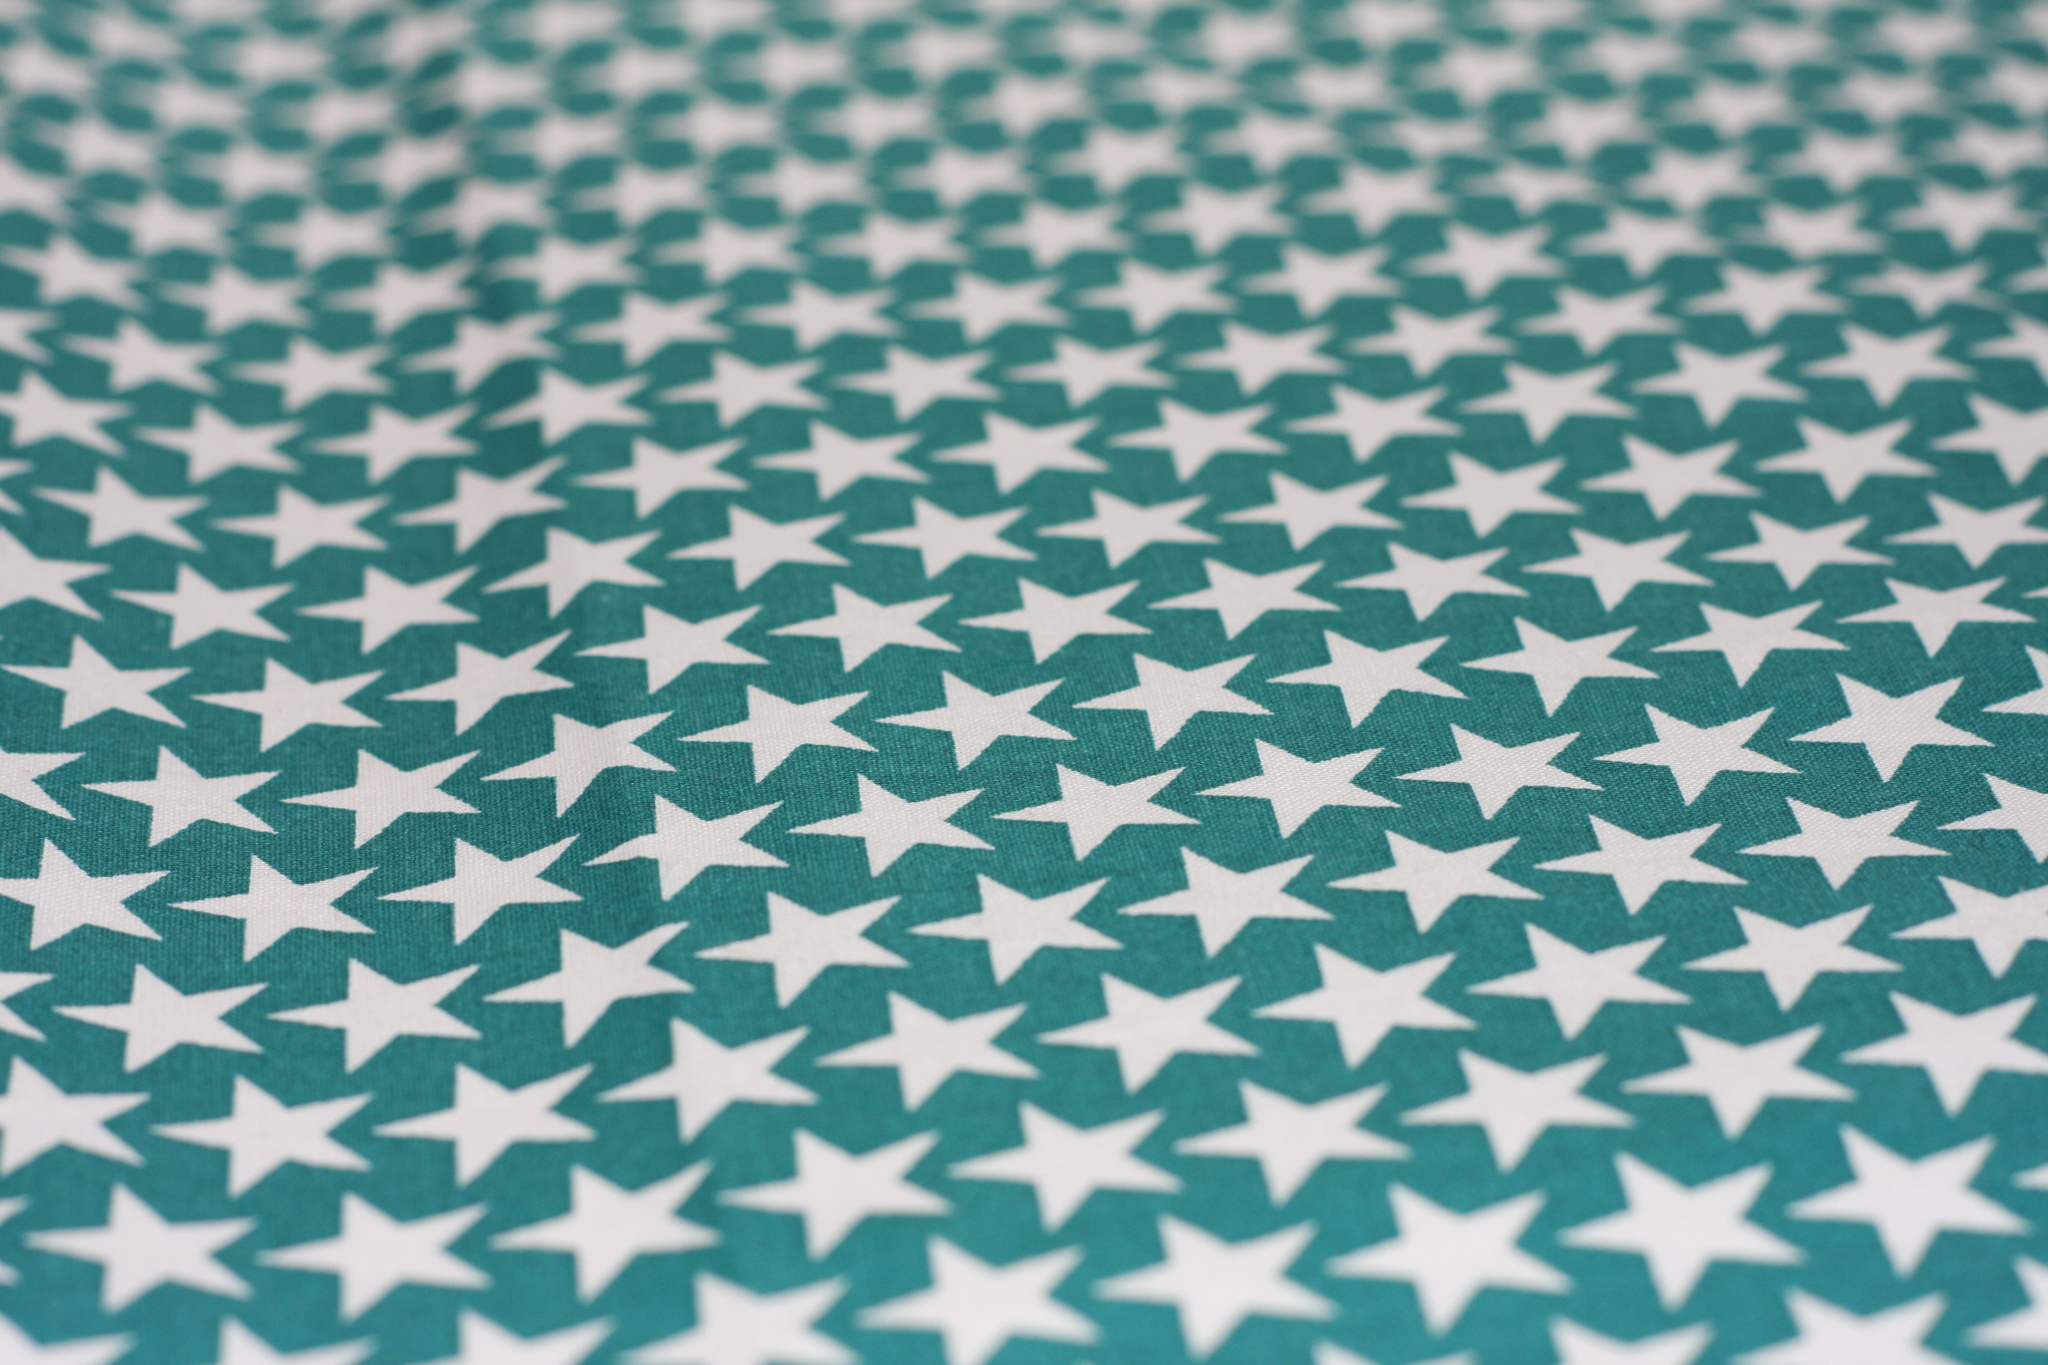 Fabric - white stars on teal